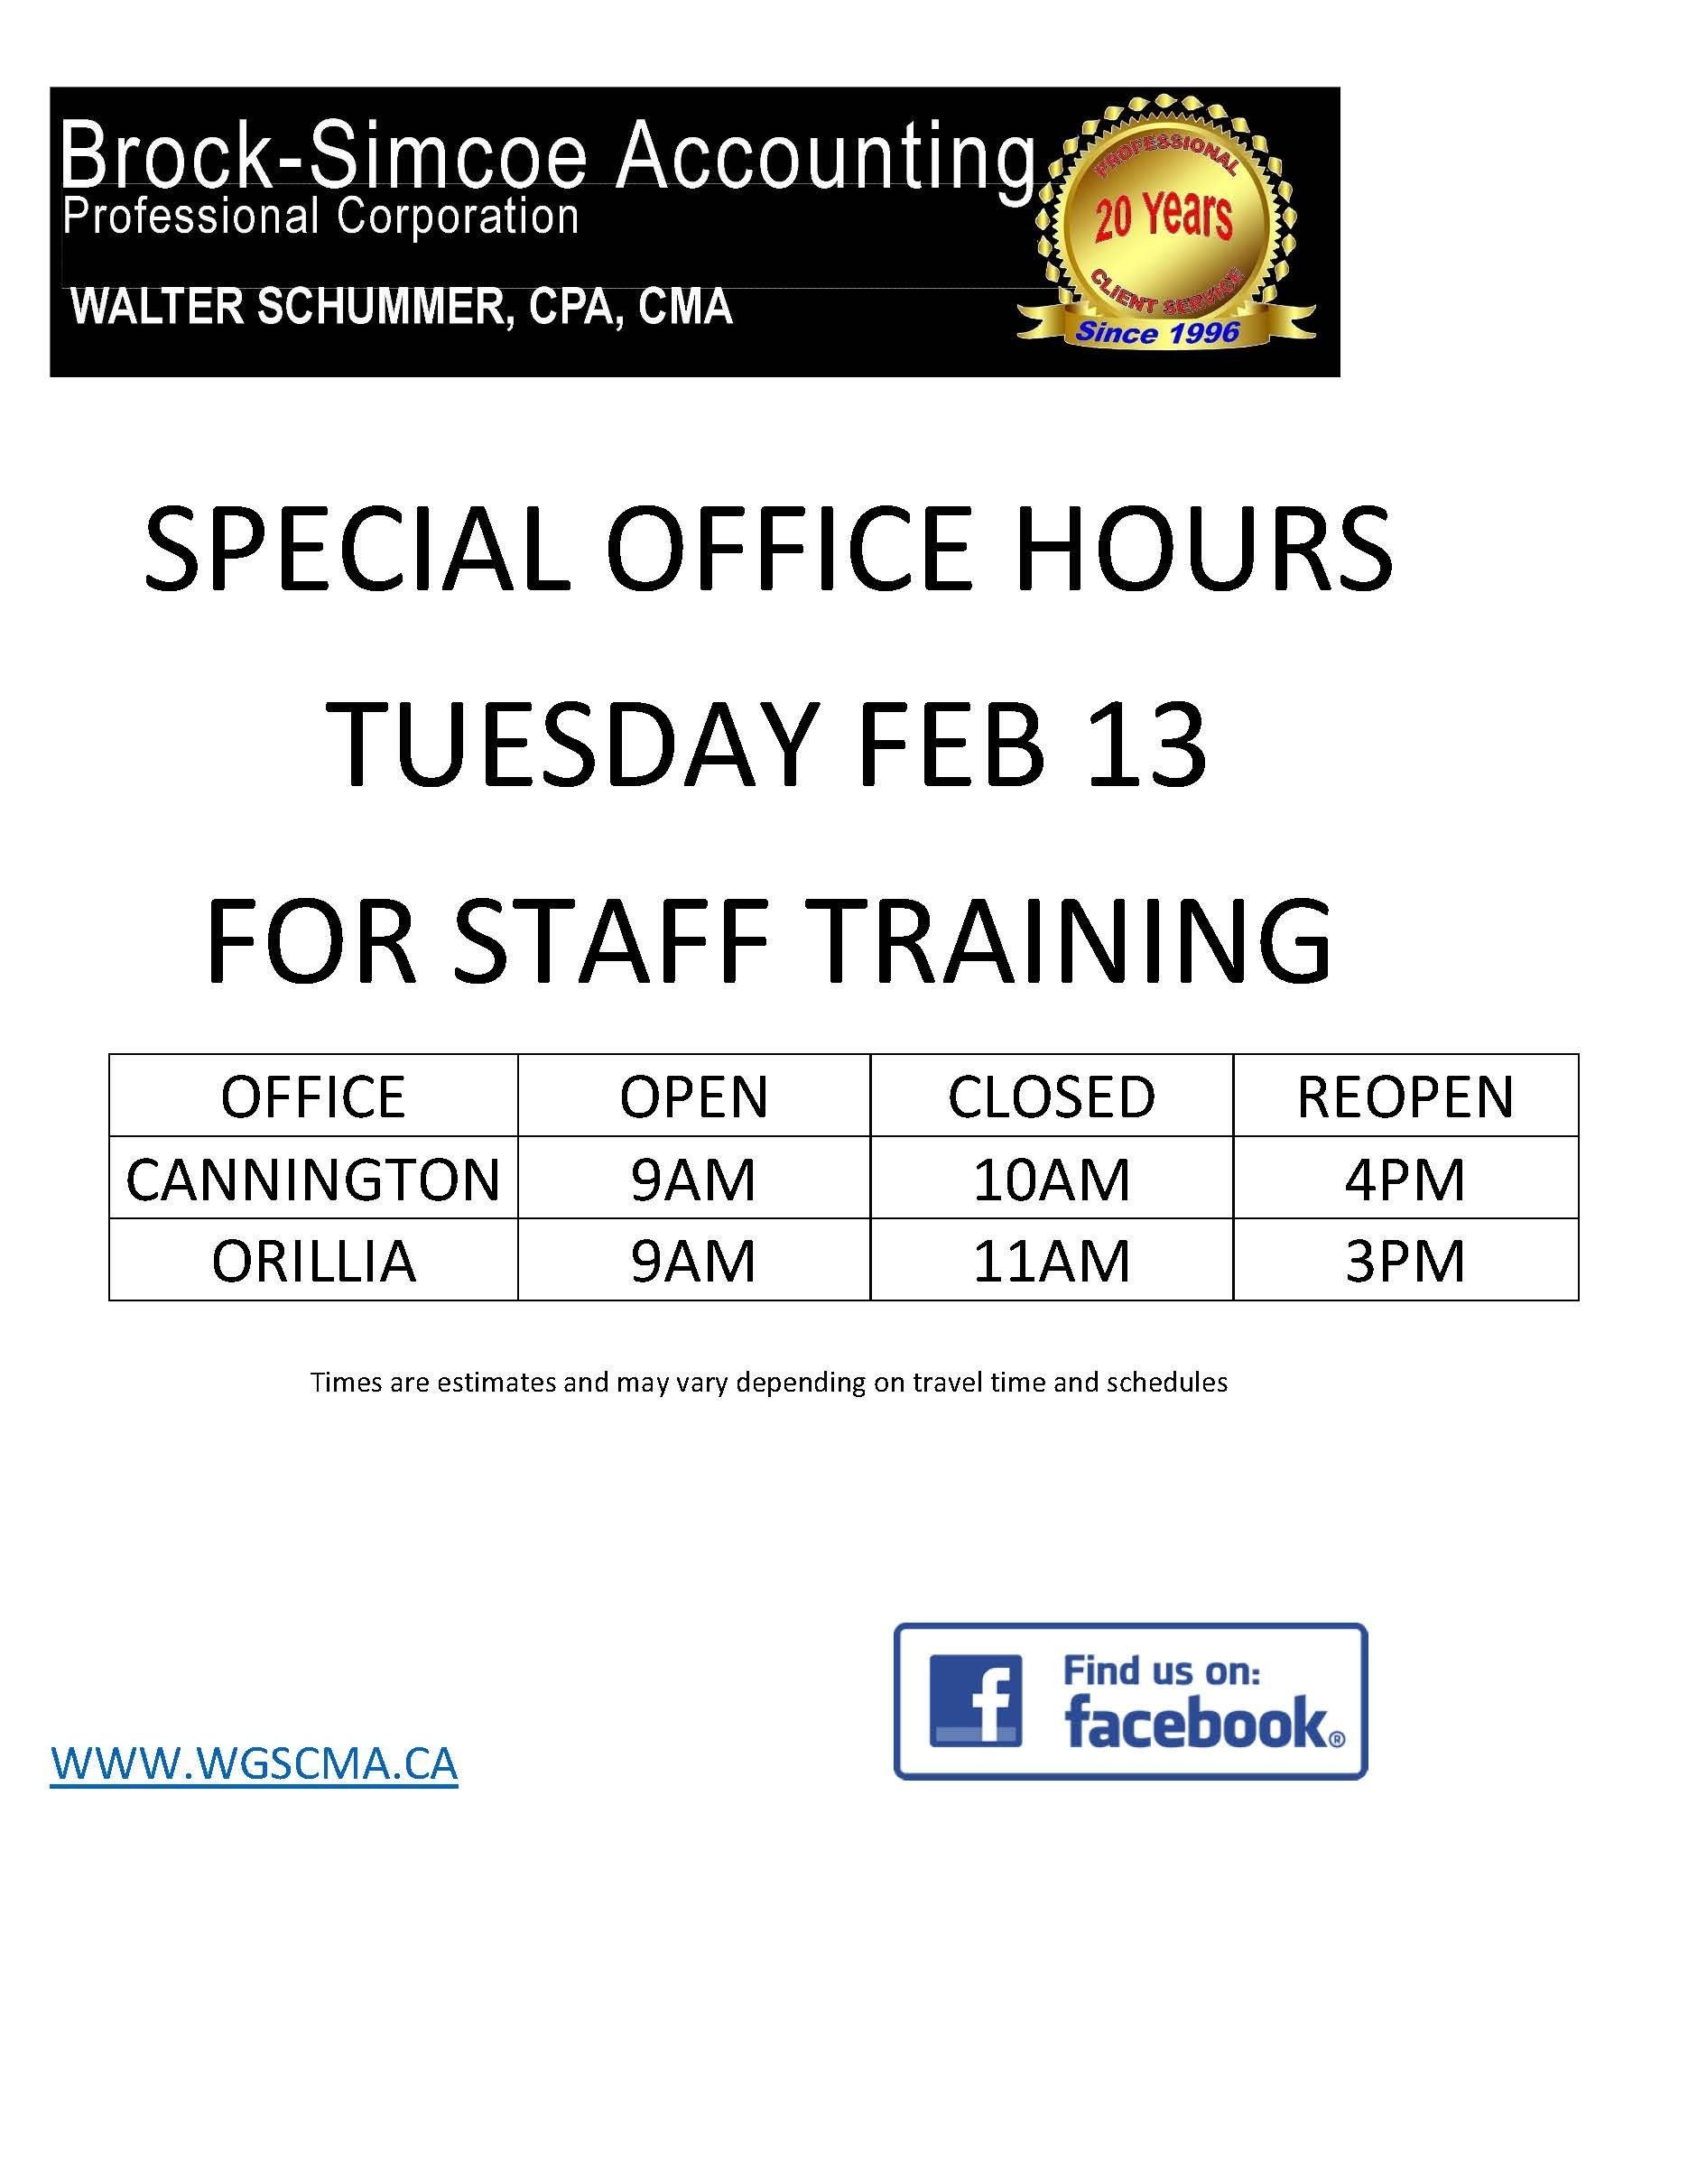 SPECIAL HOURS ON FEB 13